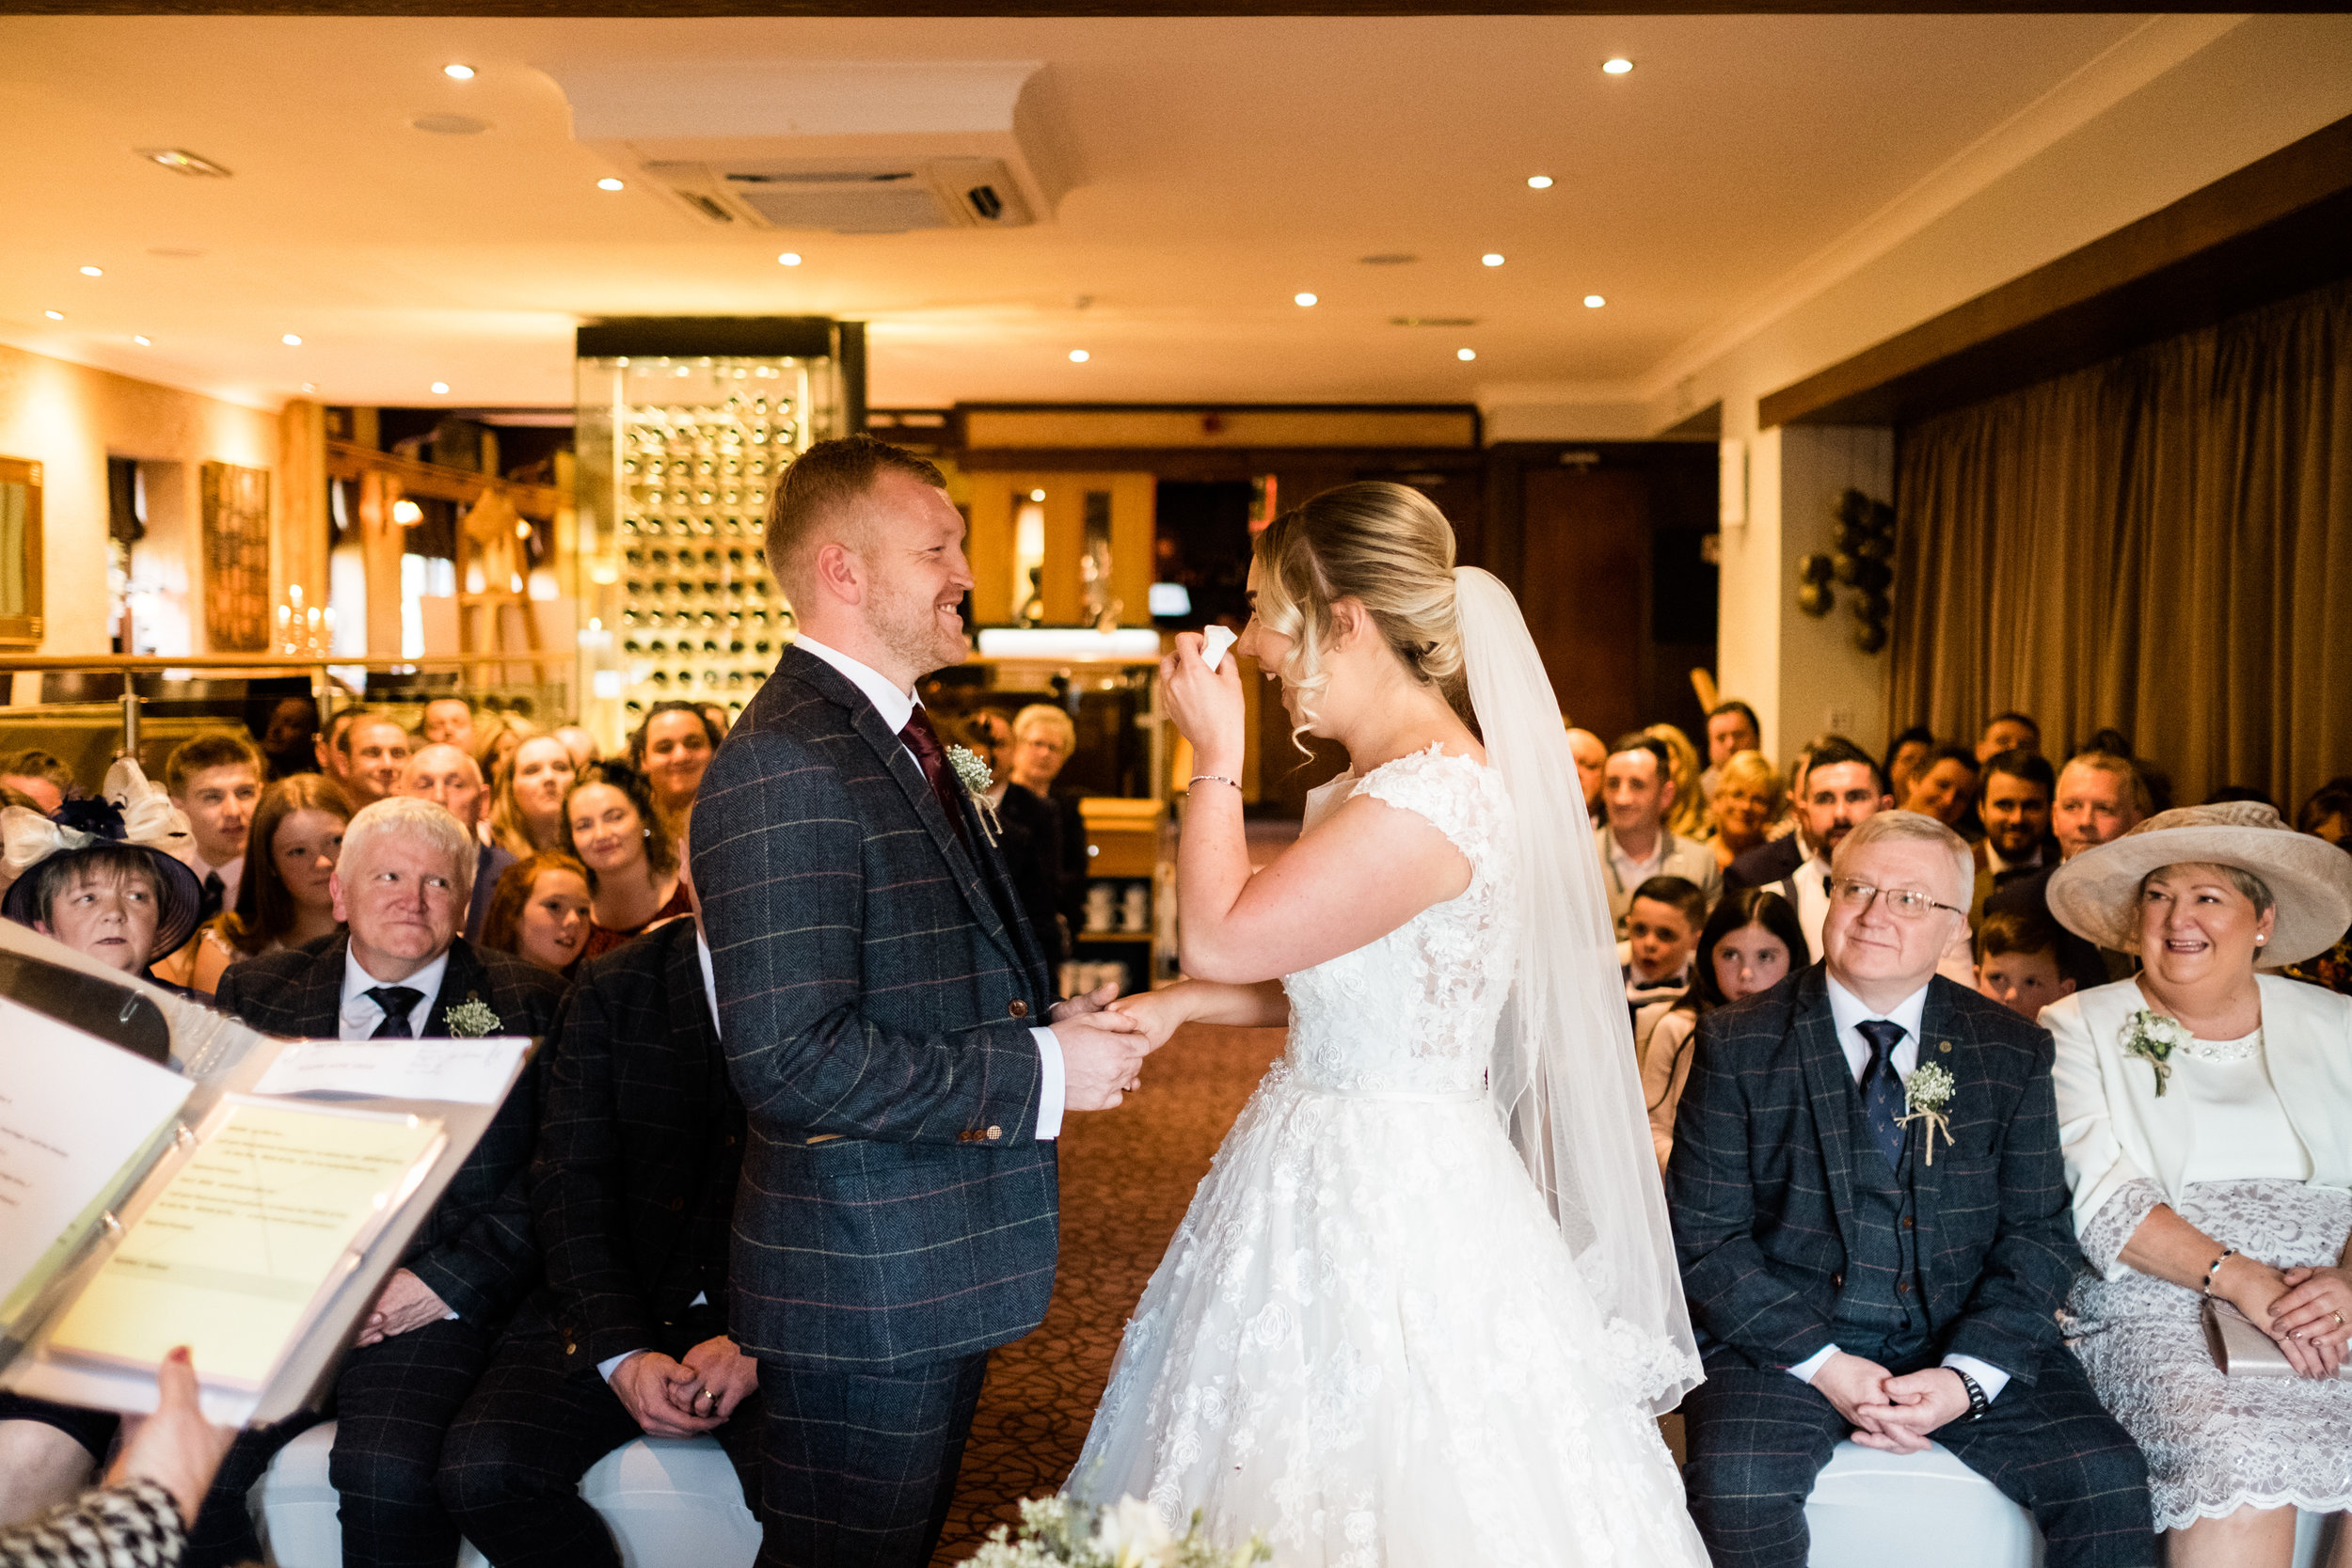 Autumn Wedding Photography at The Three Horseshoes, Blackshaw Moor, Staffordshire Moorlands - Jenny Harper-25.jpg